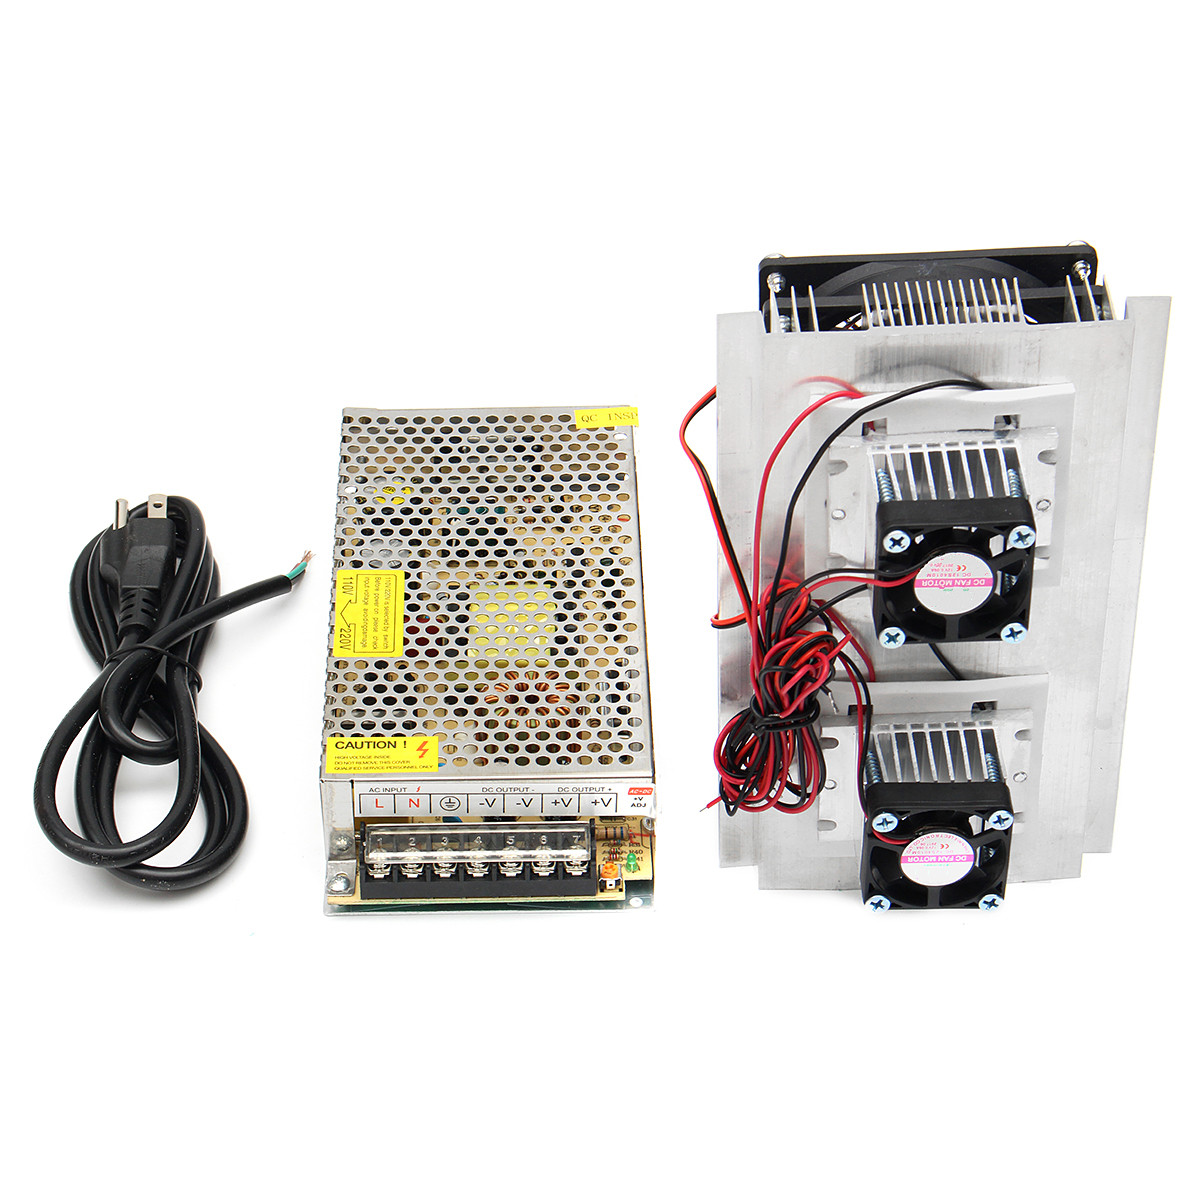 120W 12V 15A DIY Semiconductive Electronic Refrigerator Thermoelectric Cooling System Double Fan